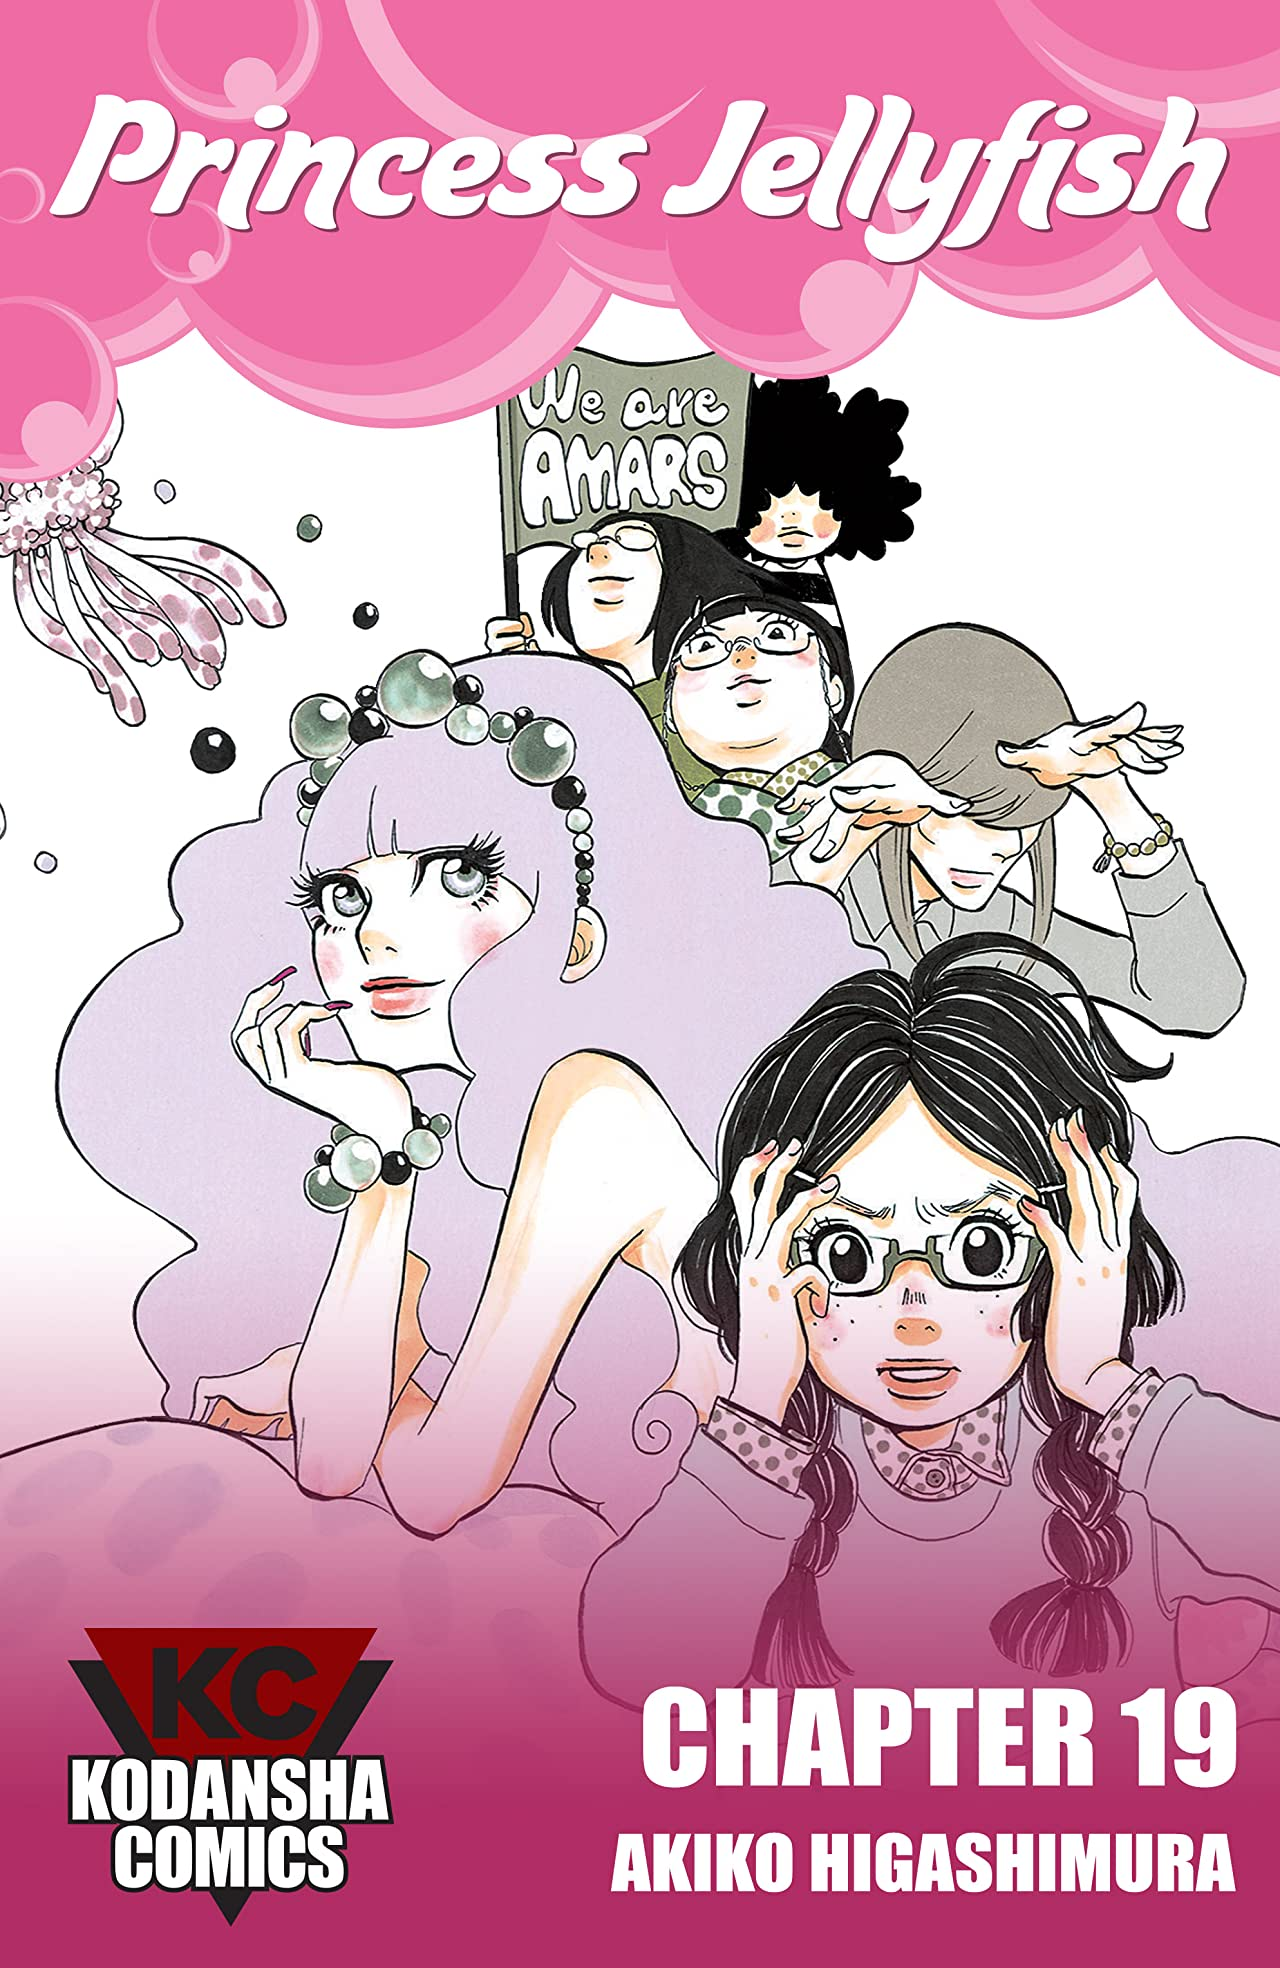 Princess Jellyfish #19